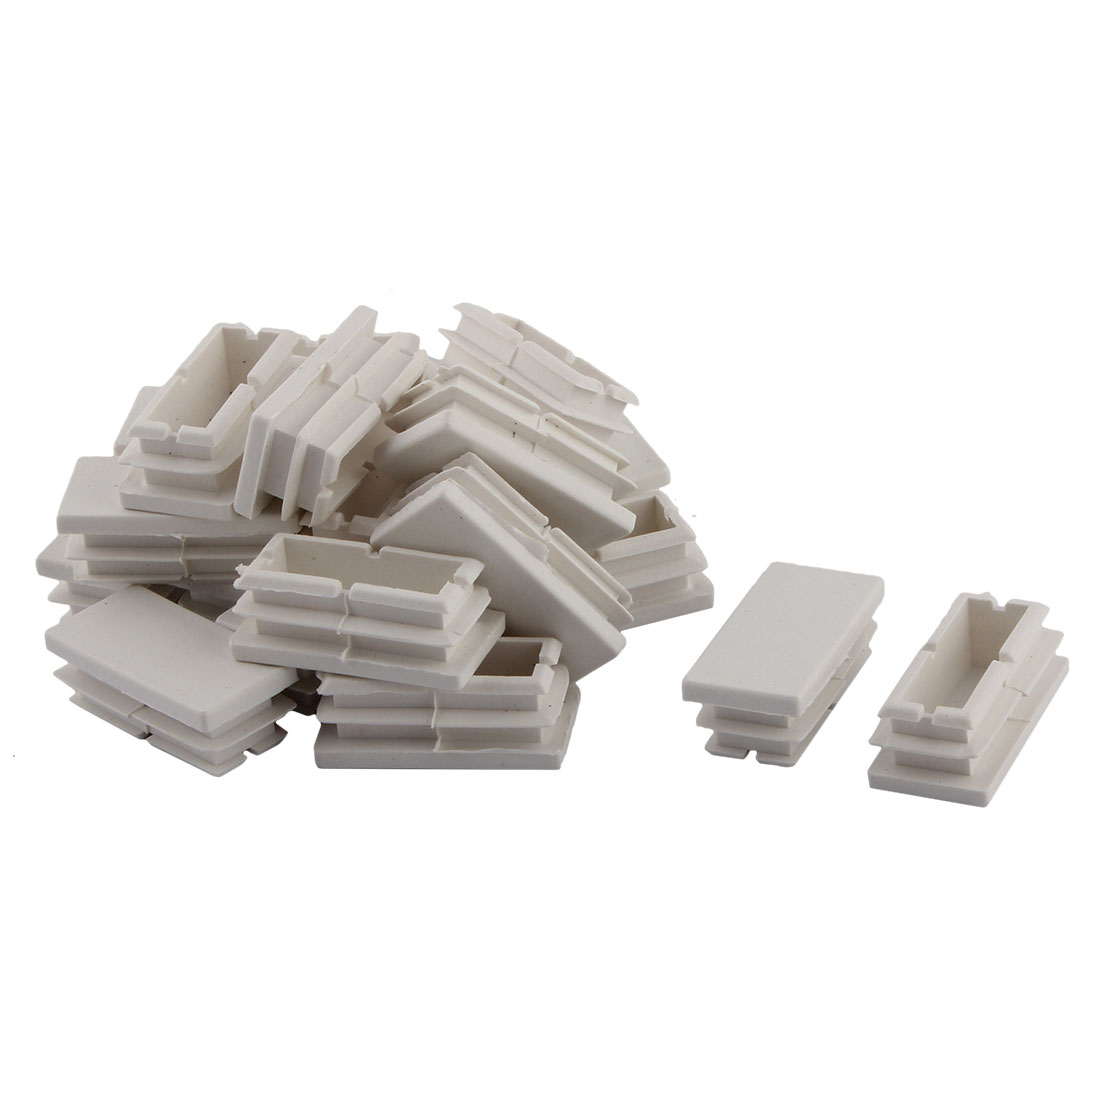 Household Plastic Rectangular Shaped Chair Leg Tube Pipe Insert White 40 x 20mm 20 PCS